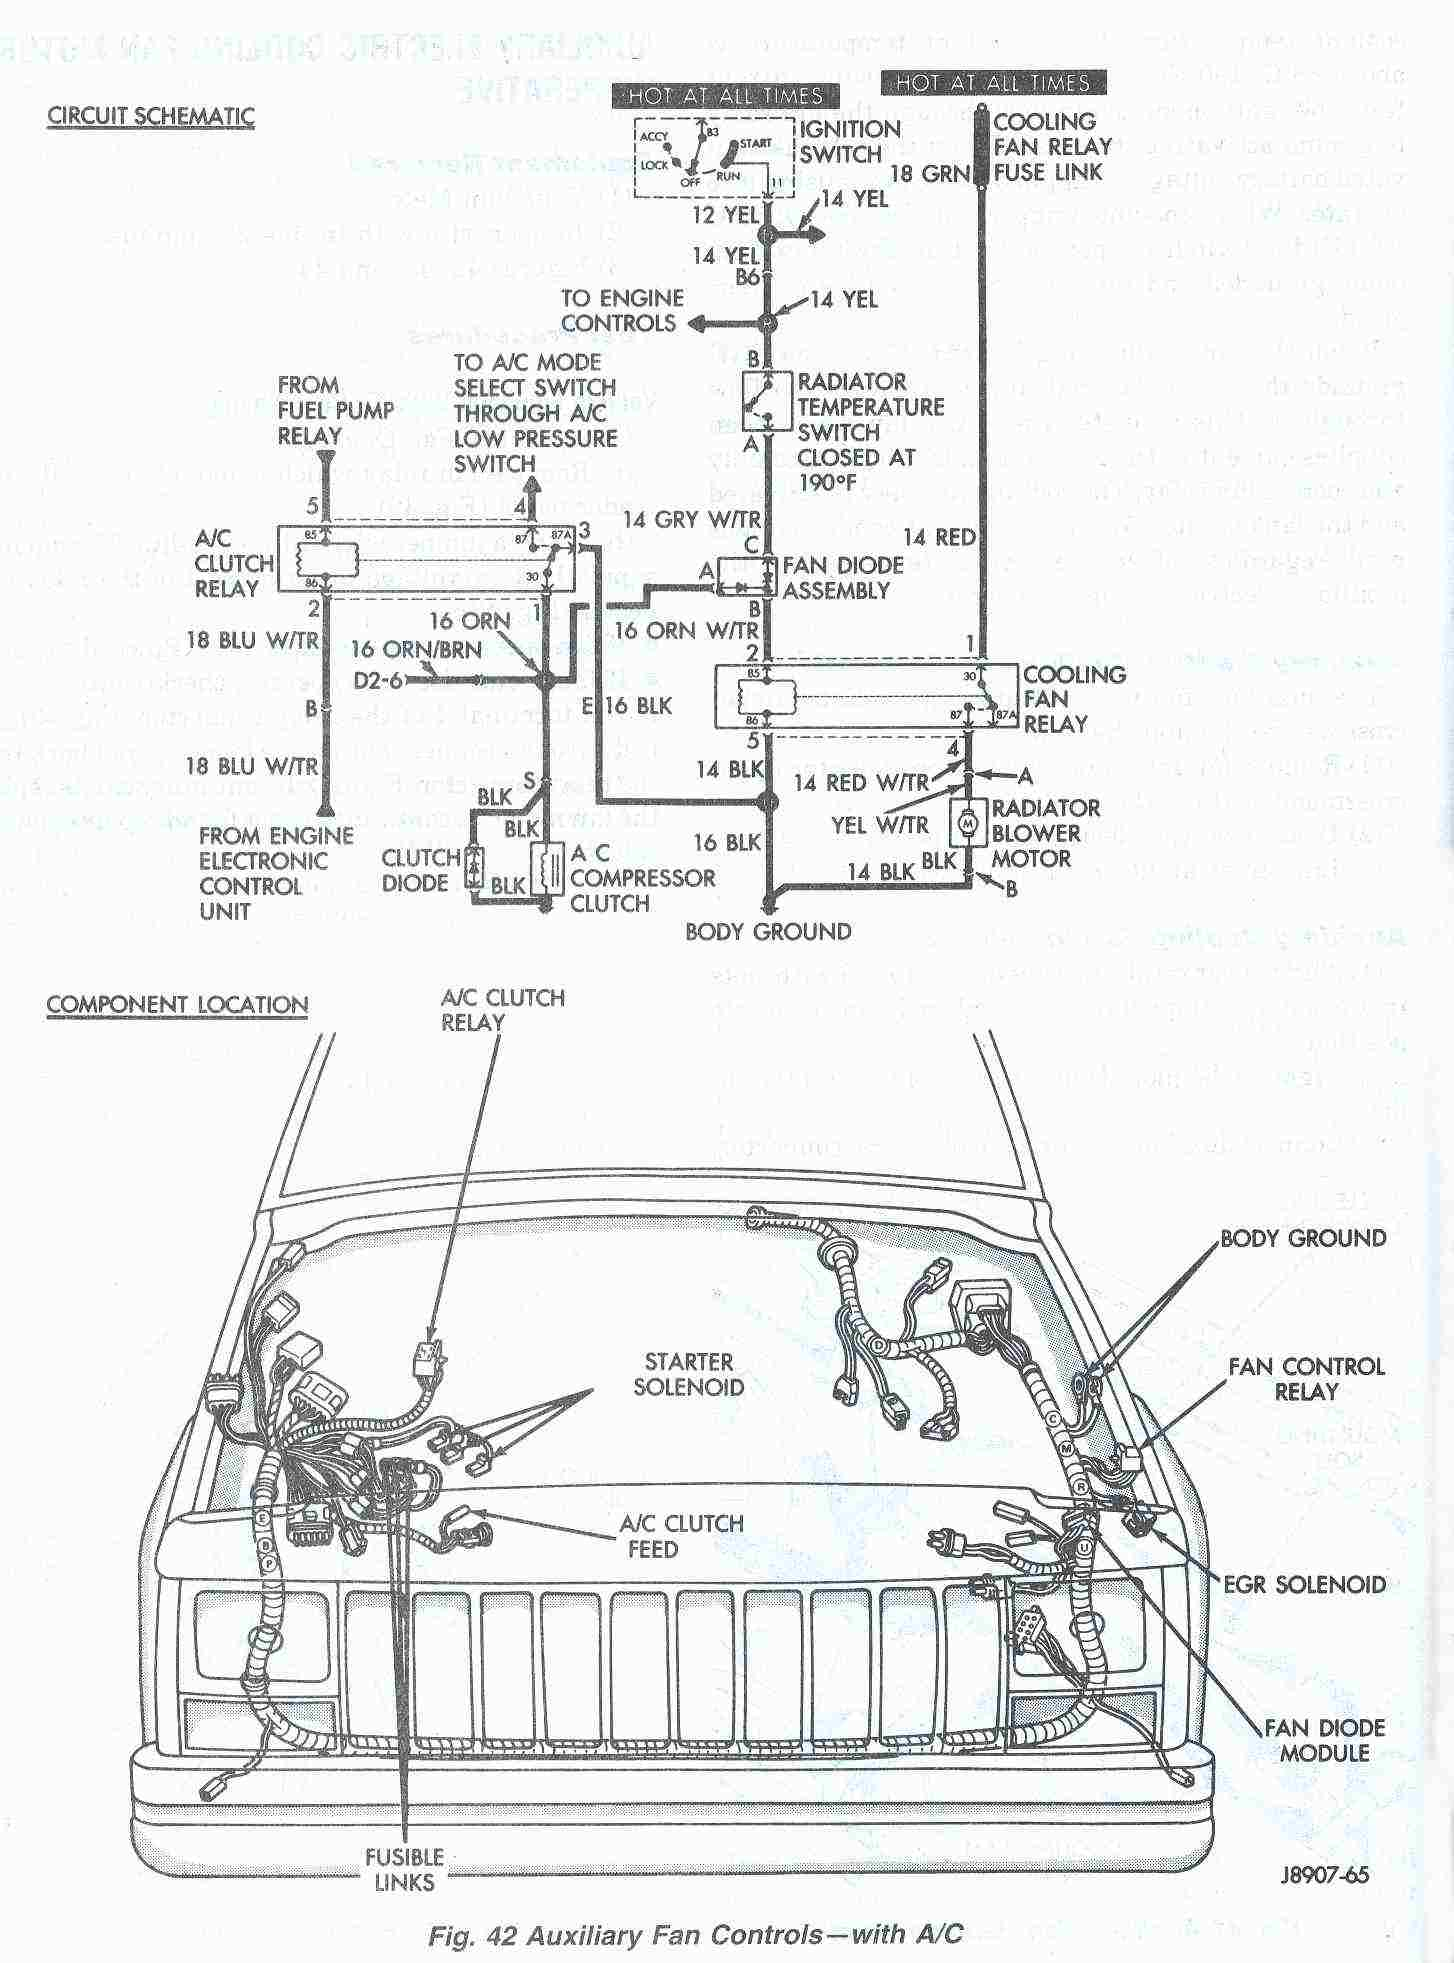 Electric Fan Relay Wiring Diagram With Air All For Jeep Cherokee Cooling System Troubleshooting Heat Sequencer Furnace